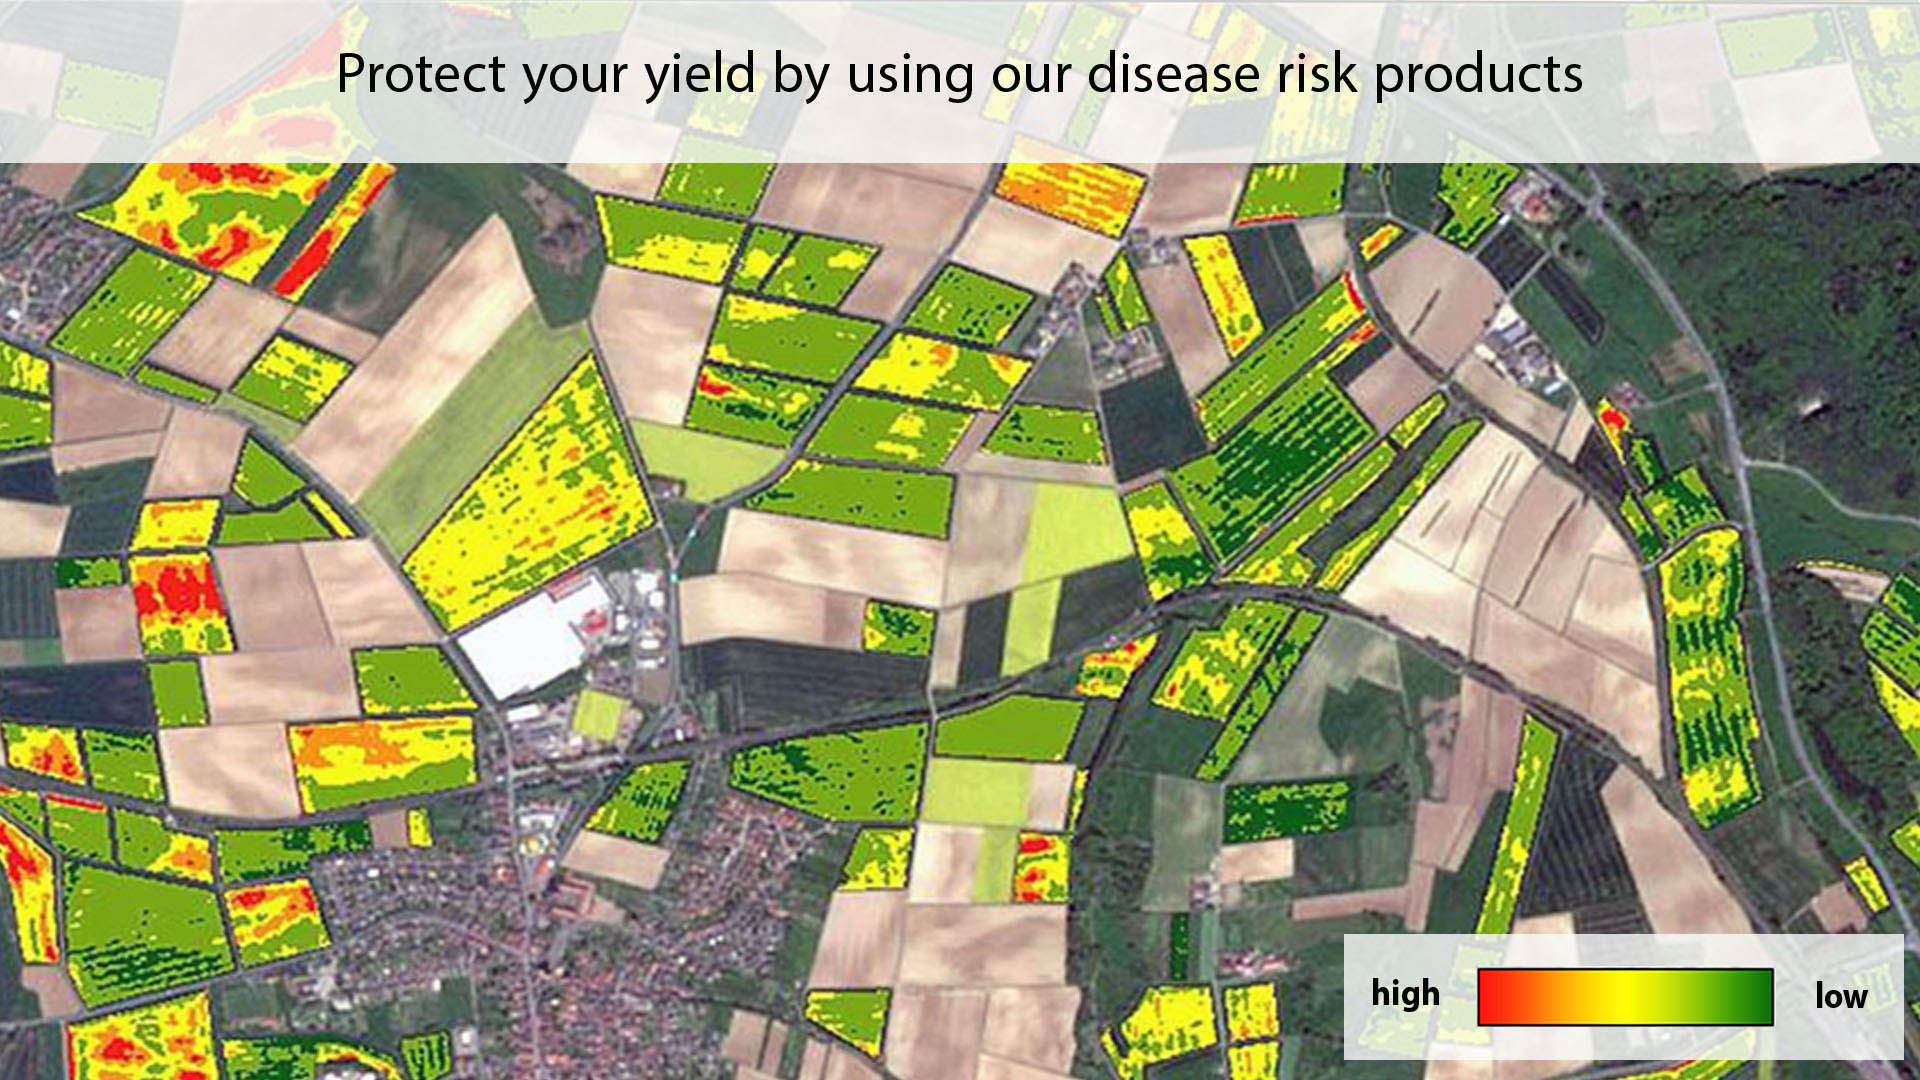 Protect your yield by using our disease risk products